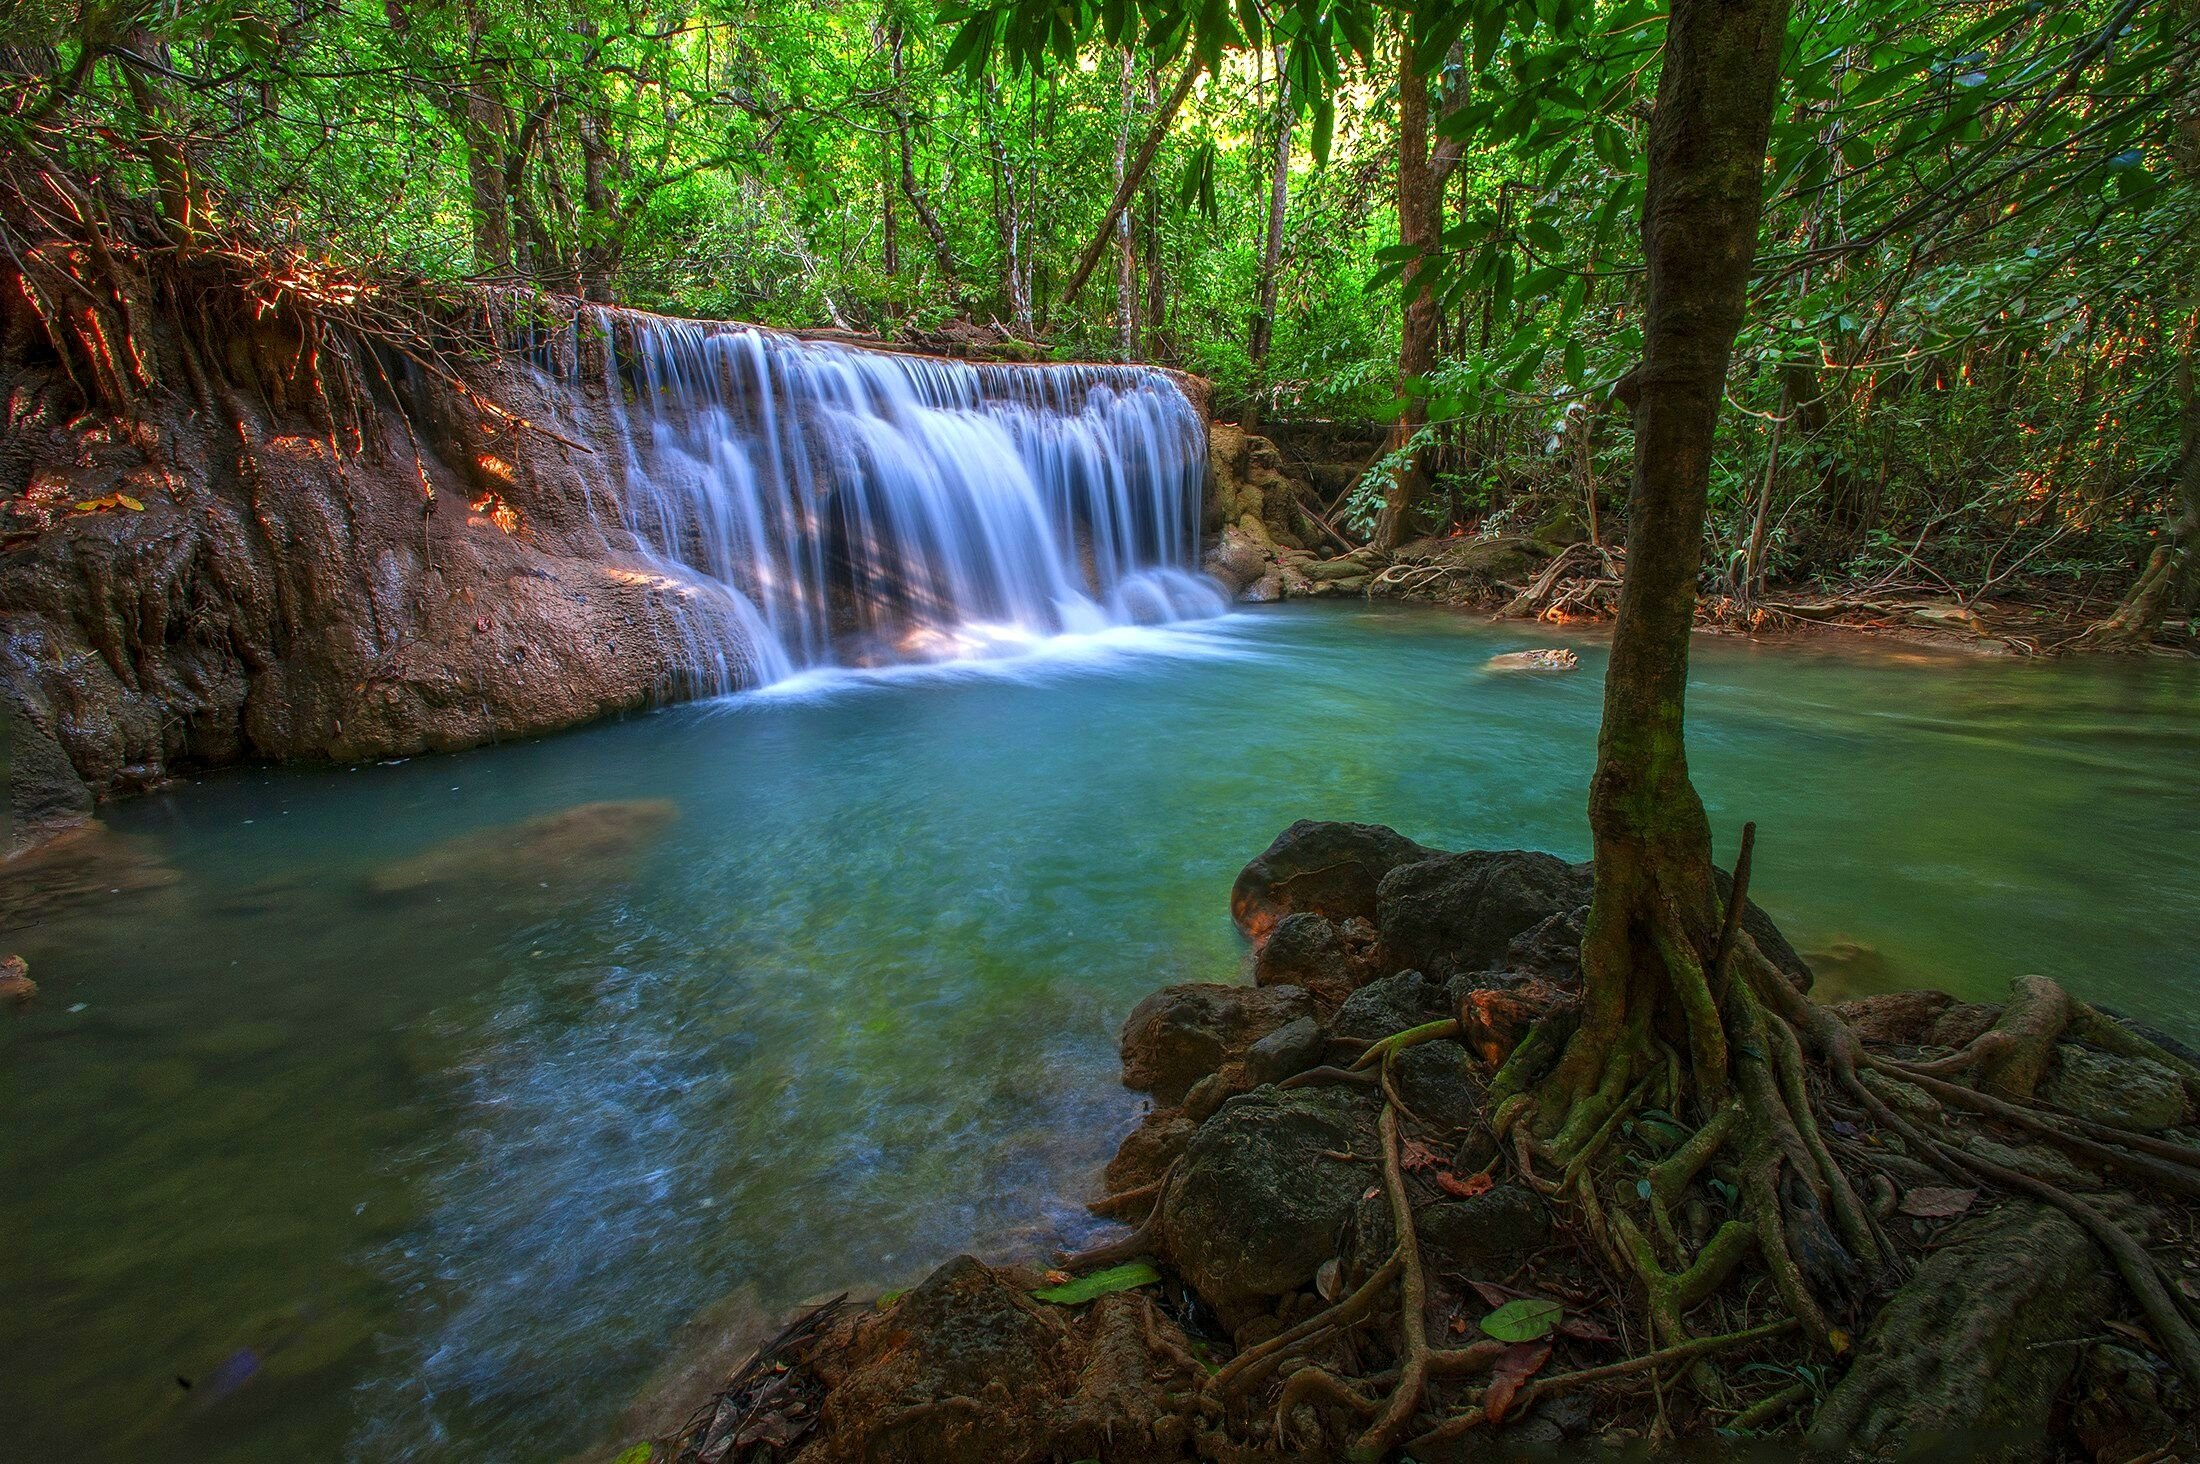 jungle forest trees stream waterfall rocks nature